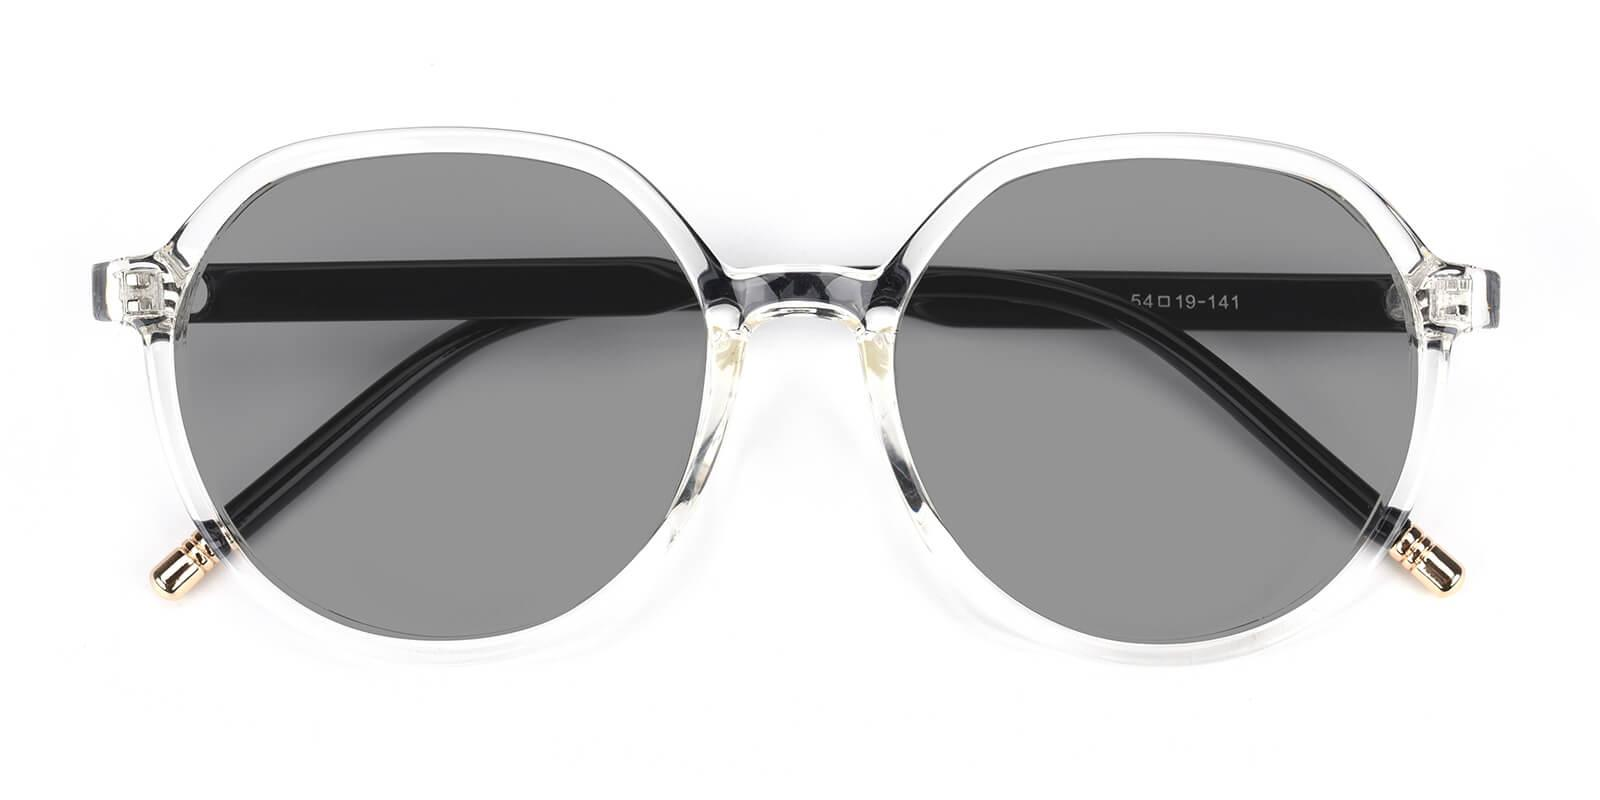 Songi-Translucent-Round-TR-Sunglasses-detail